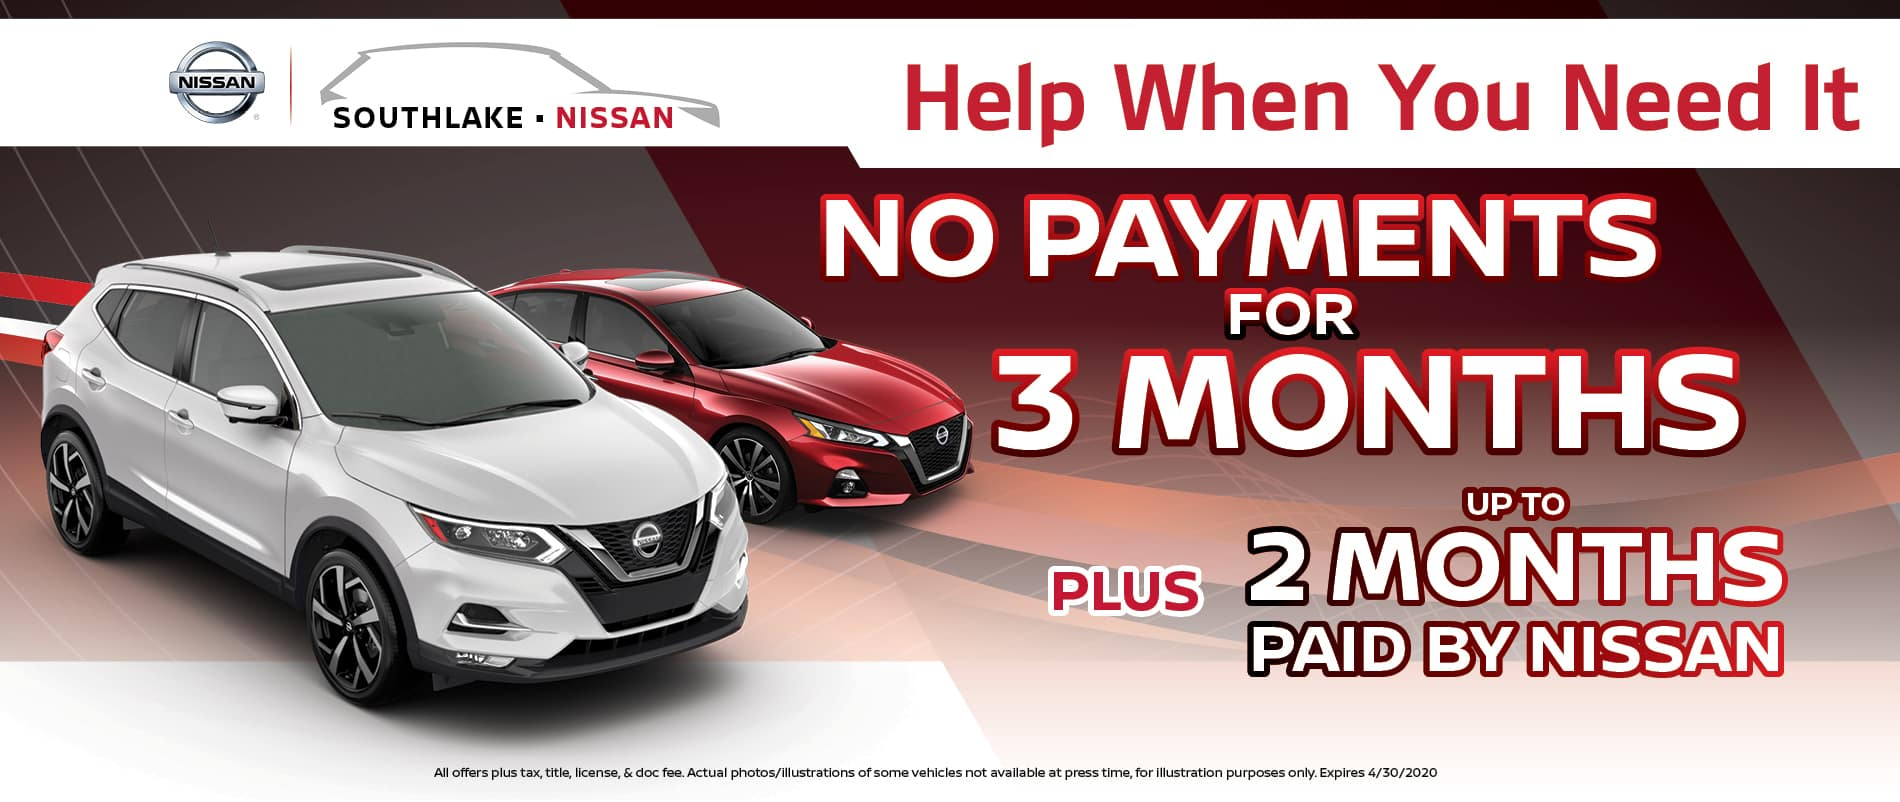 No Payments 3 Months